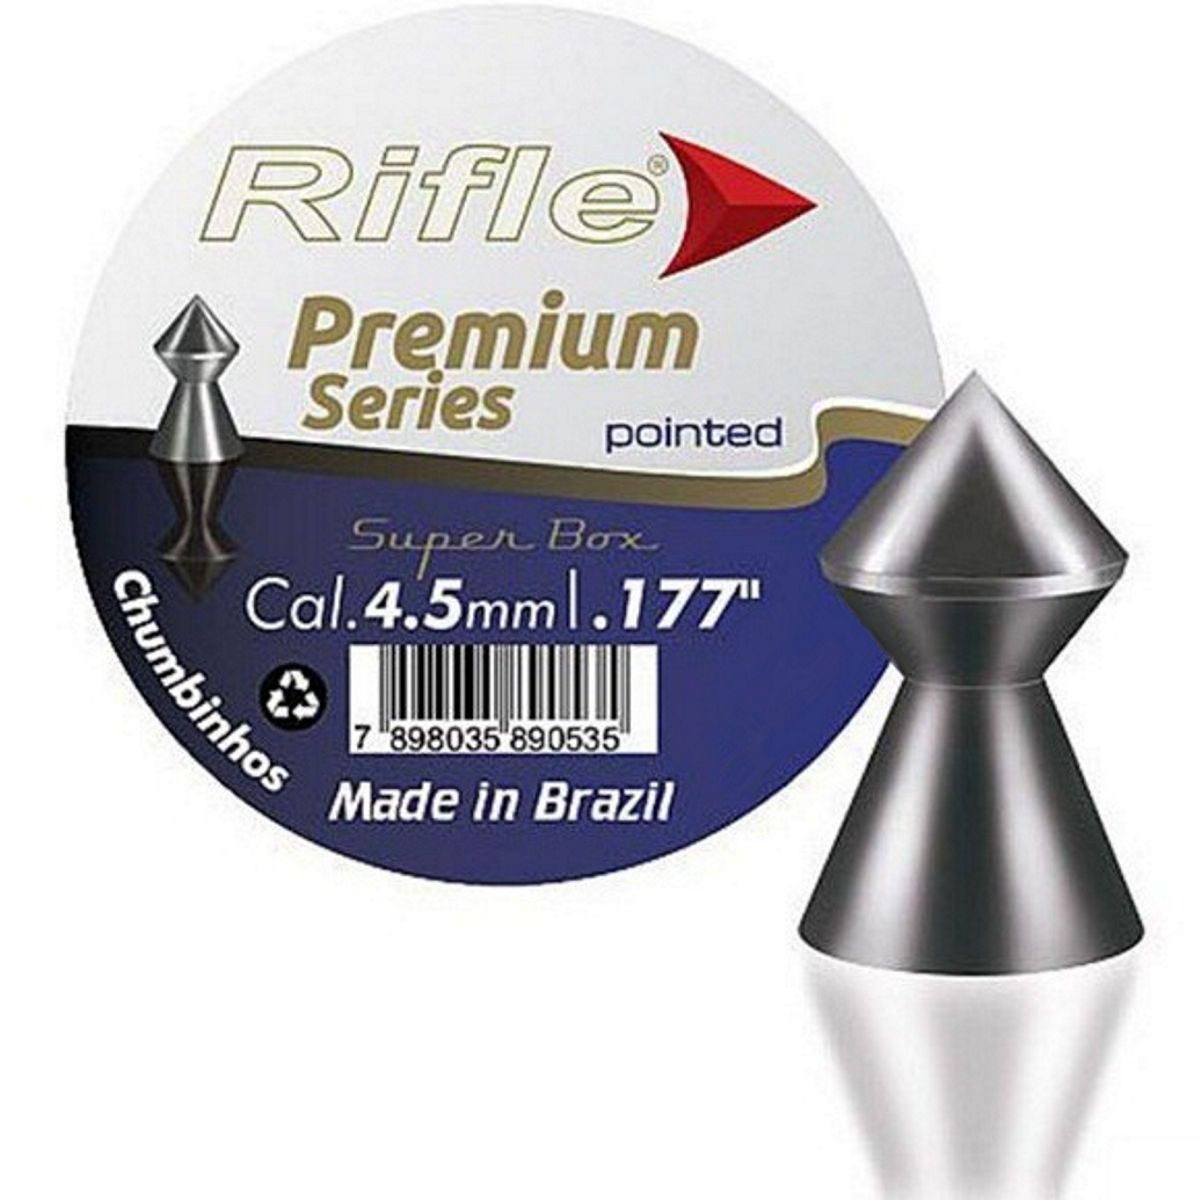 Chumbinho Rifle Pointed Premium Series Cal. 4,5mm - 250 unidades